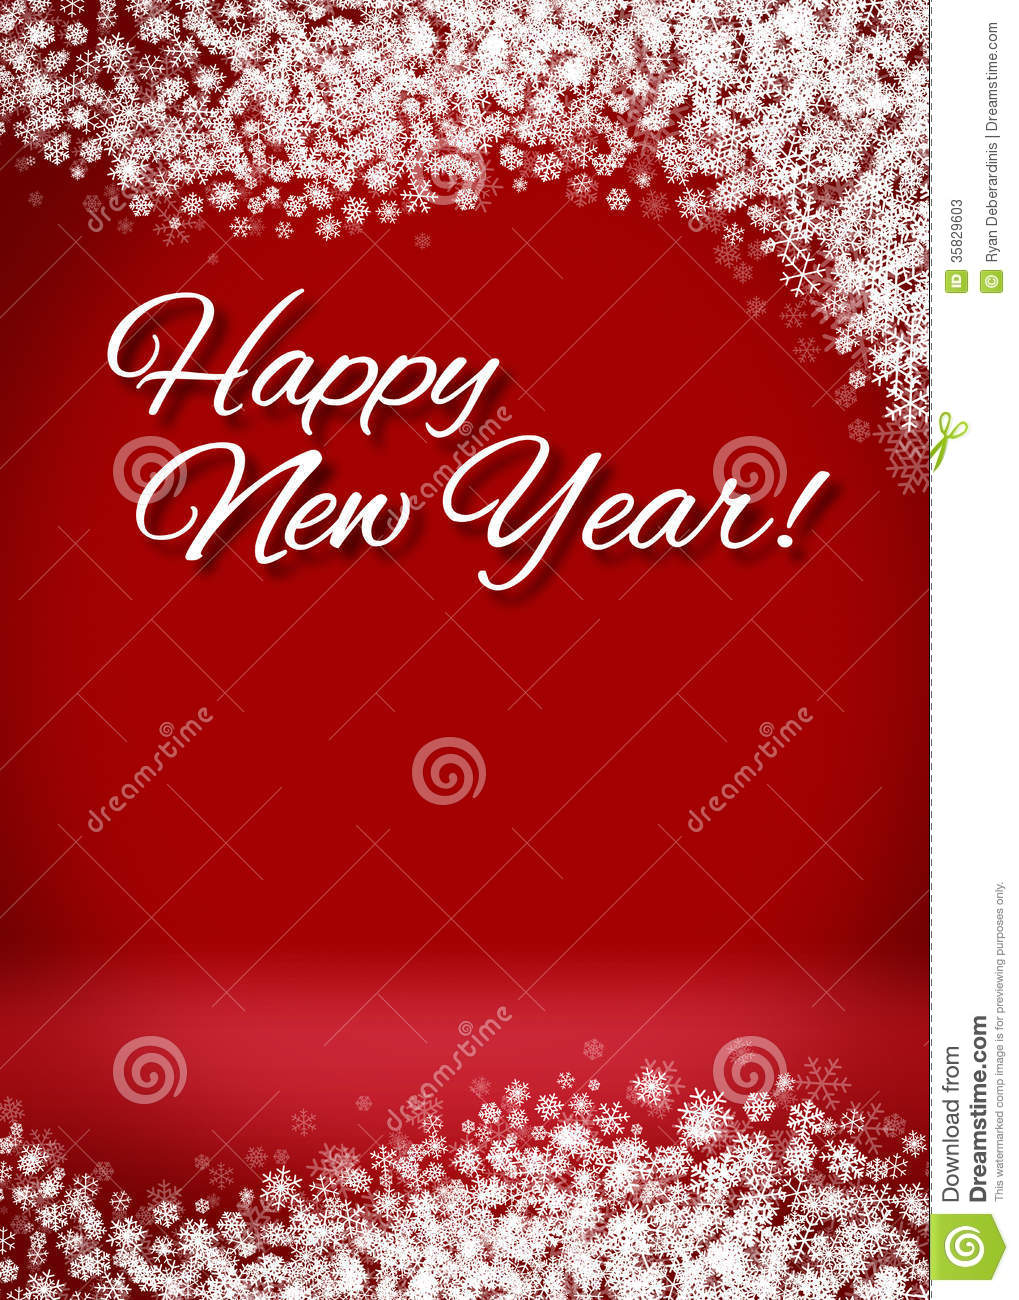 New Year Wishes Template Merry Christmas And Happy New Year 2018